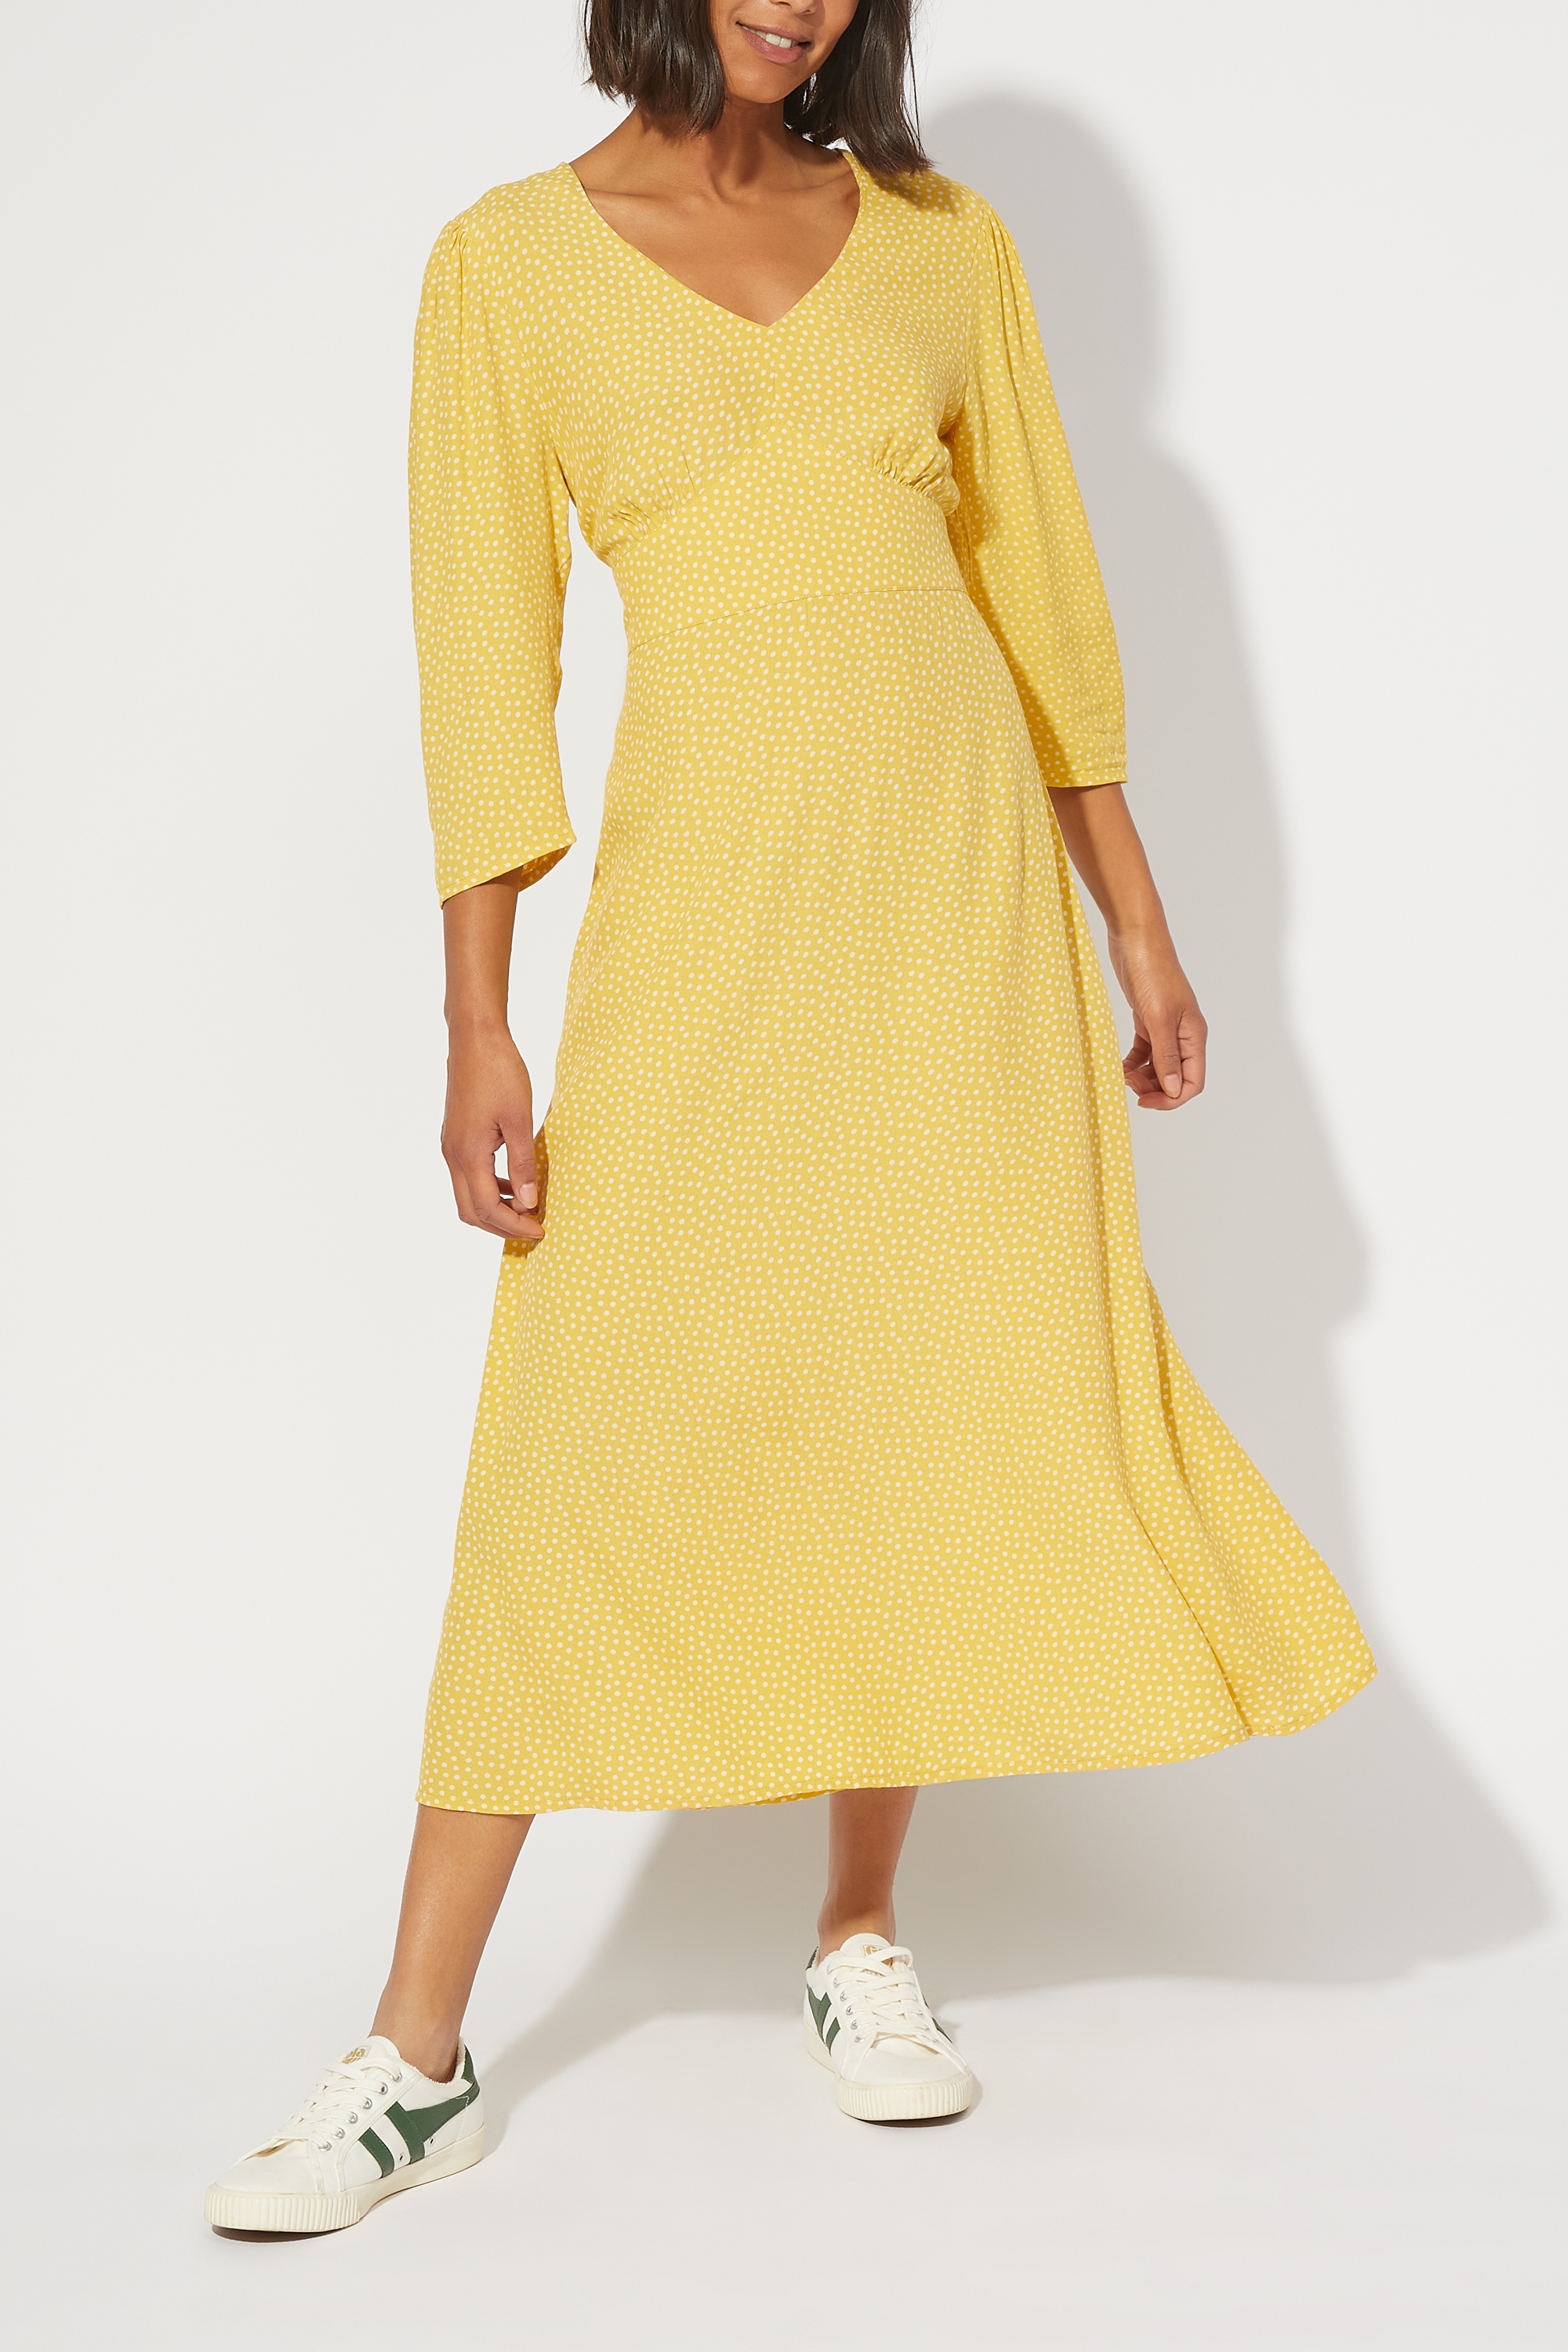 Cath Kidston Scattered Spot Printed Tea Dress in Yellow, 6